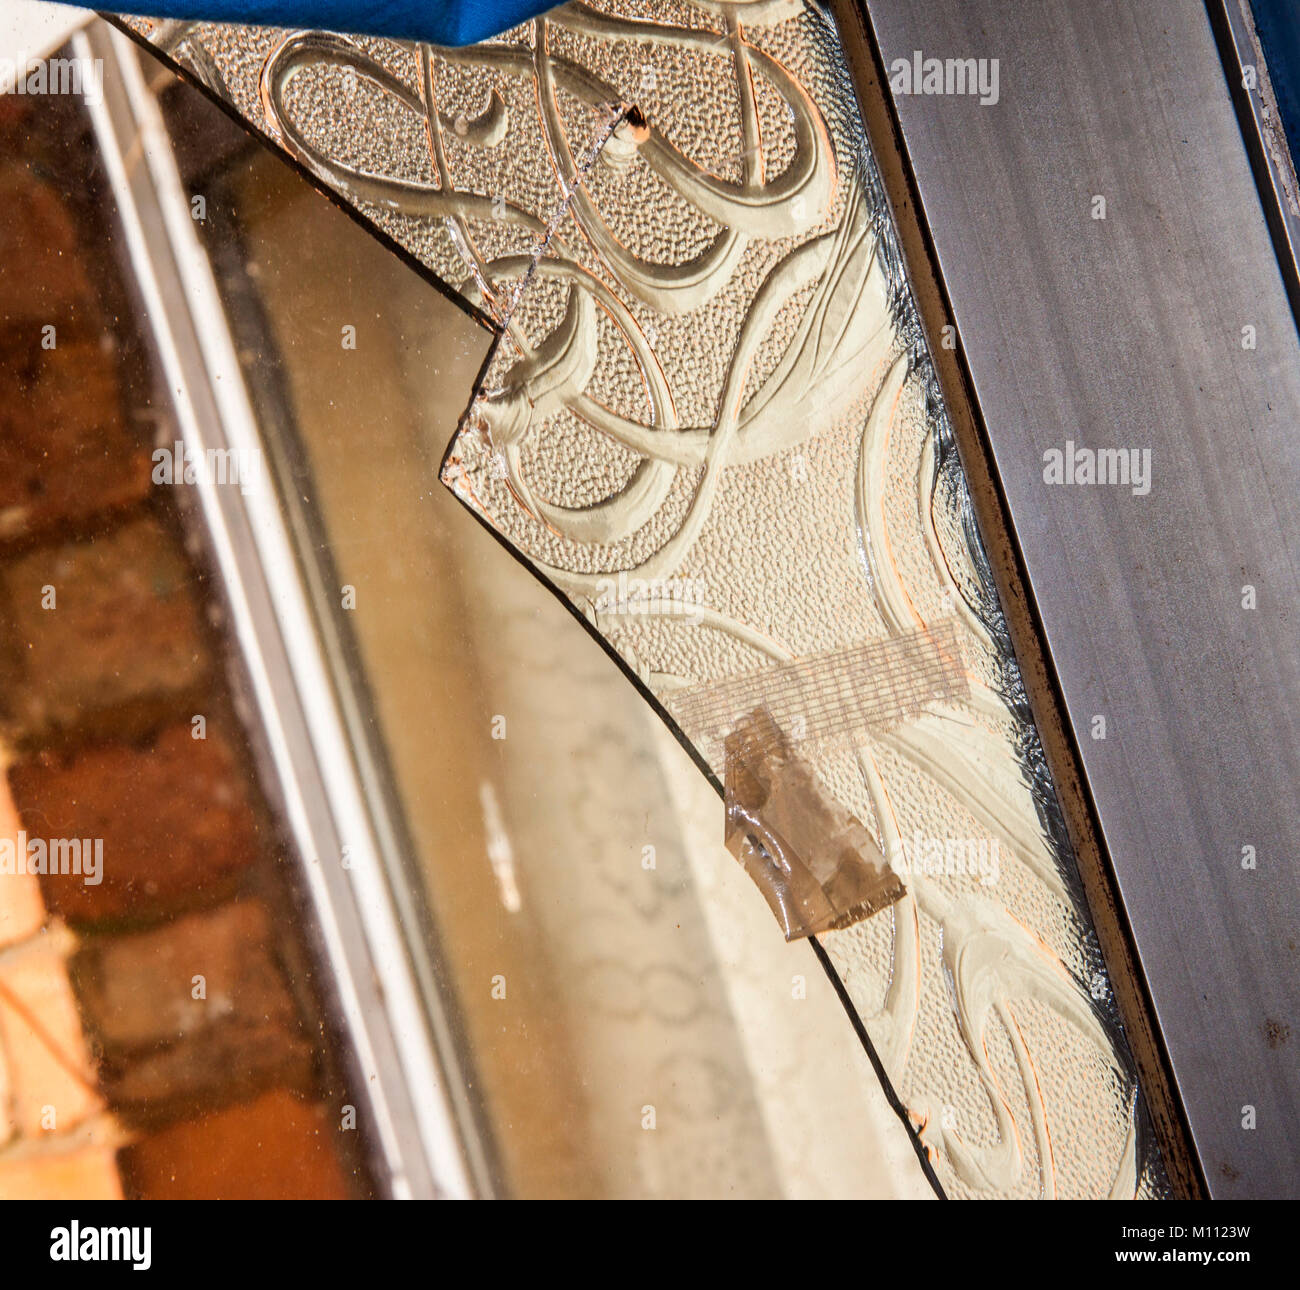 Shard of broken obscure glass in a damaged window frame. - Stock Image